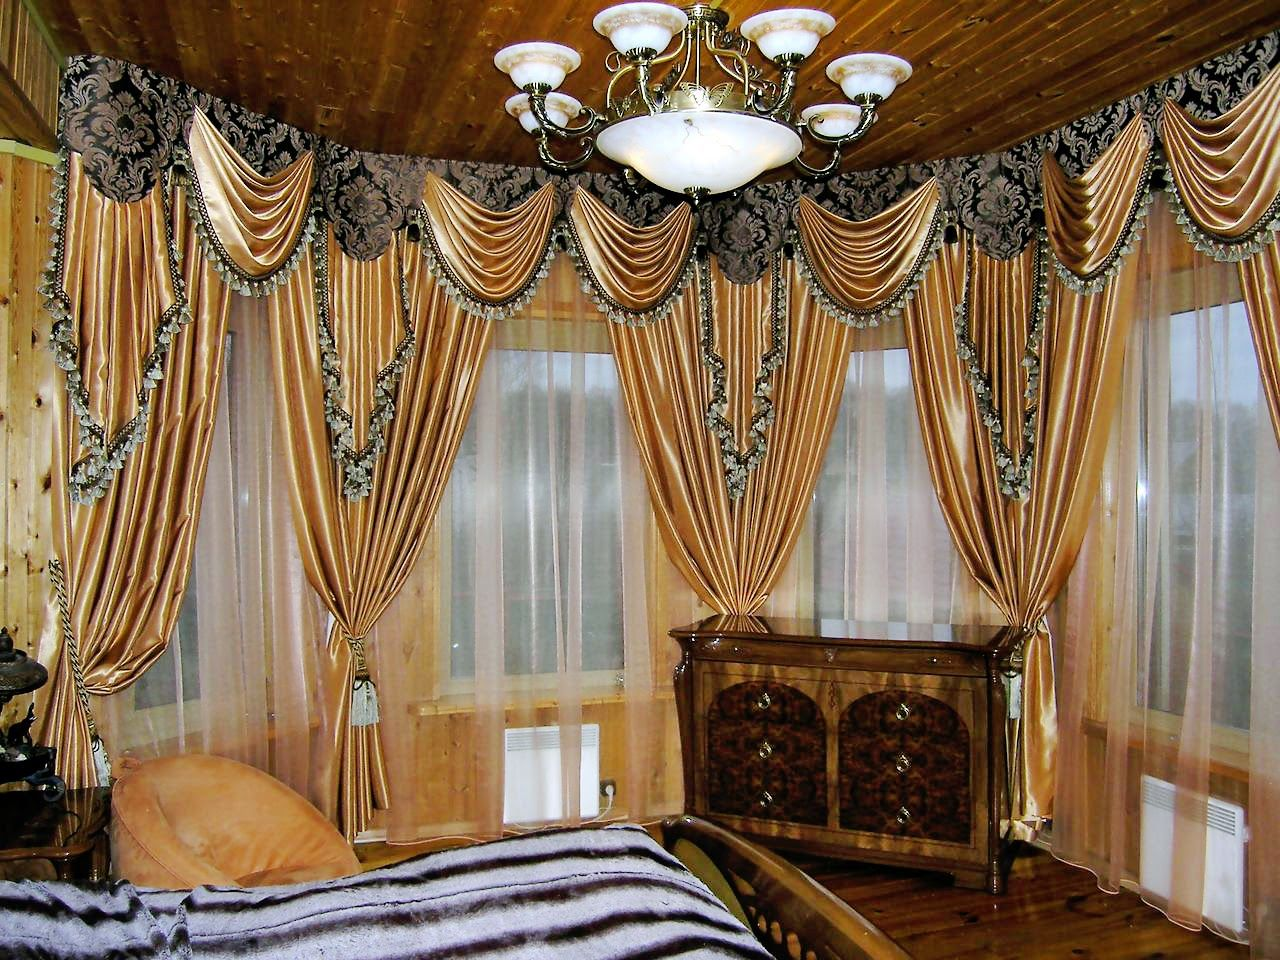 Classic curtain designs for living room - Curtains Classic Style Ideas Curtains Classic Designs Curtains Classic Living Room Classic Curtains For The Bedroom Top Ideas For Classic Curtains Style